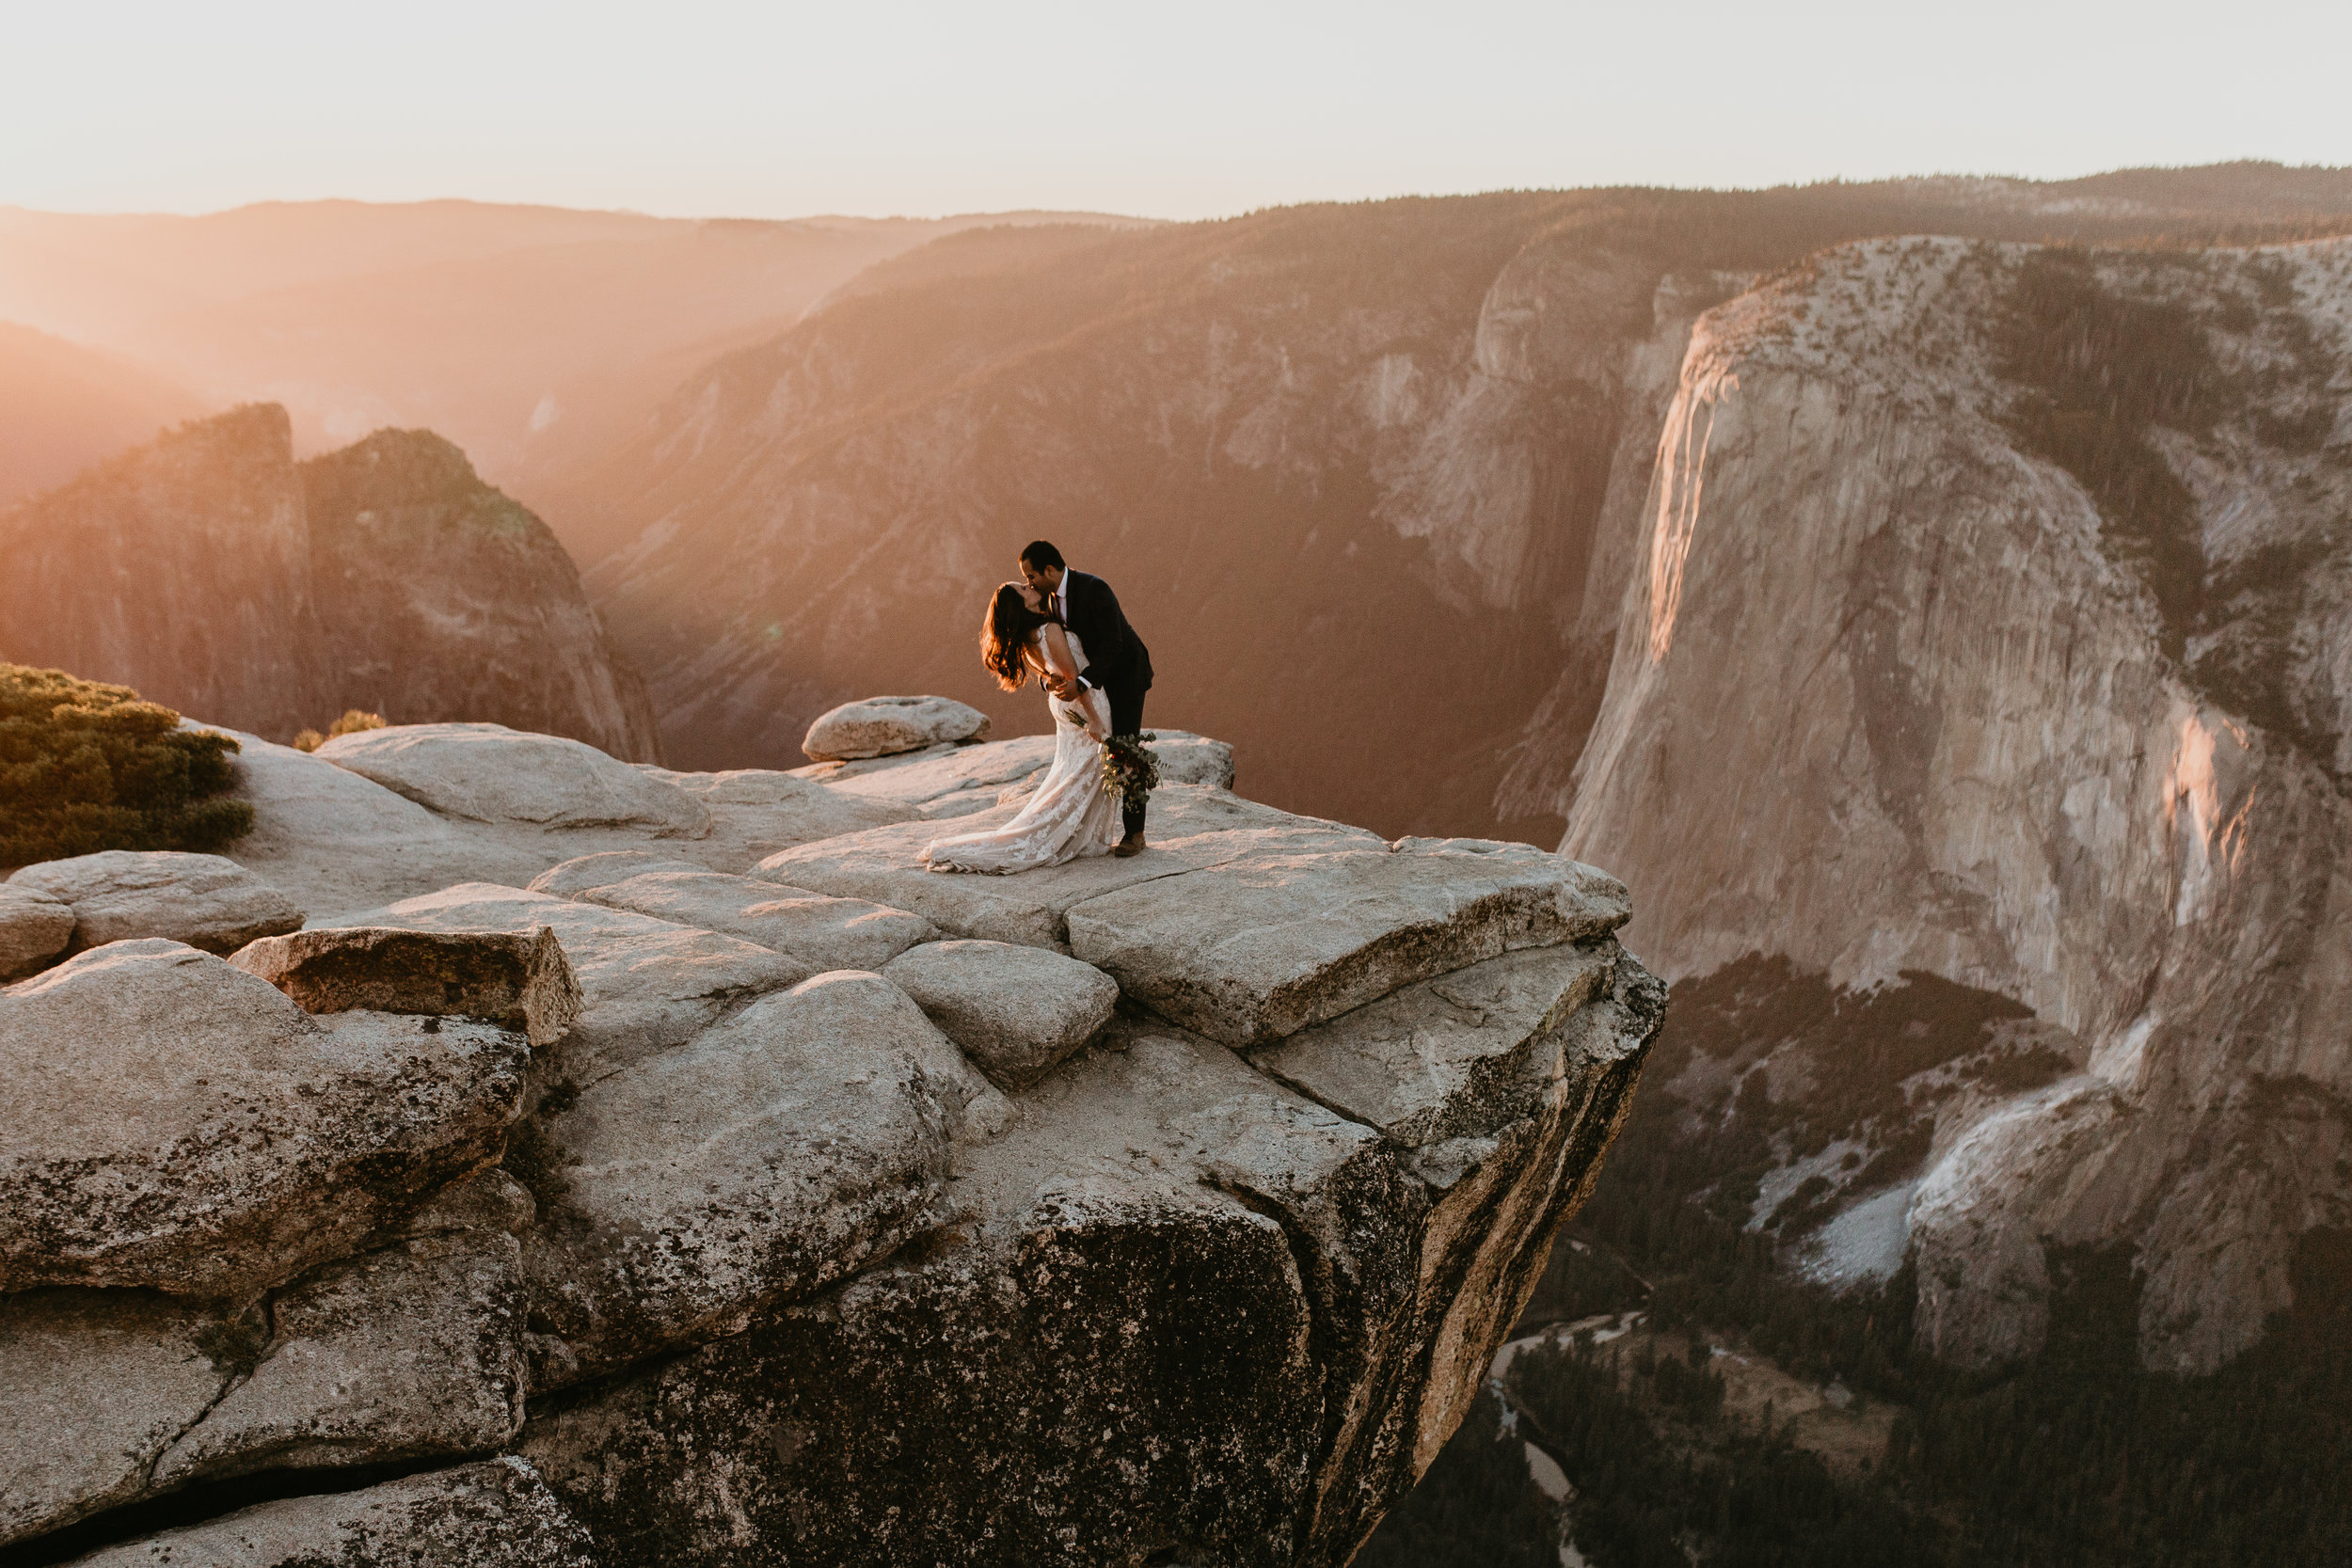 nicole-daacke-photography-intimate-elopement-wedding-yosemite-national-park-california-taft-point-sunset-photos-yosemite-valley-tunnel-view-first-look-sunrise-golden-granite-hiking-adventure-wedding-adventurous-elopement-photographer-117.jpg